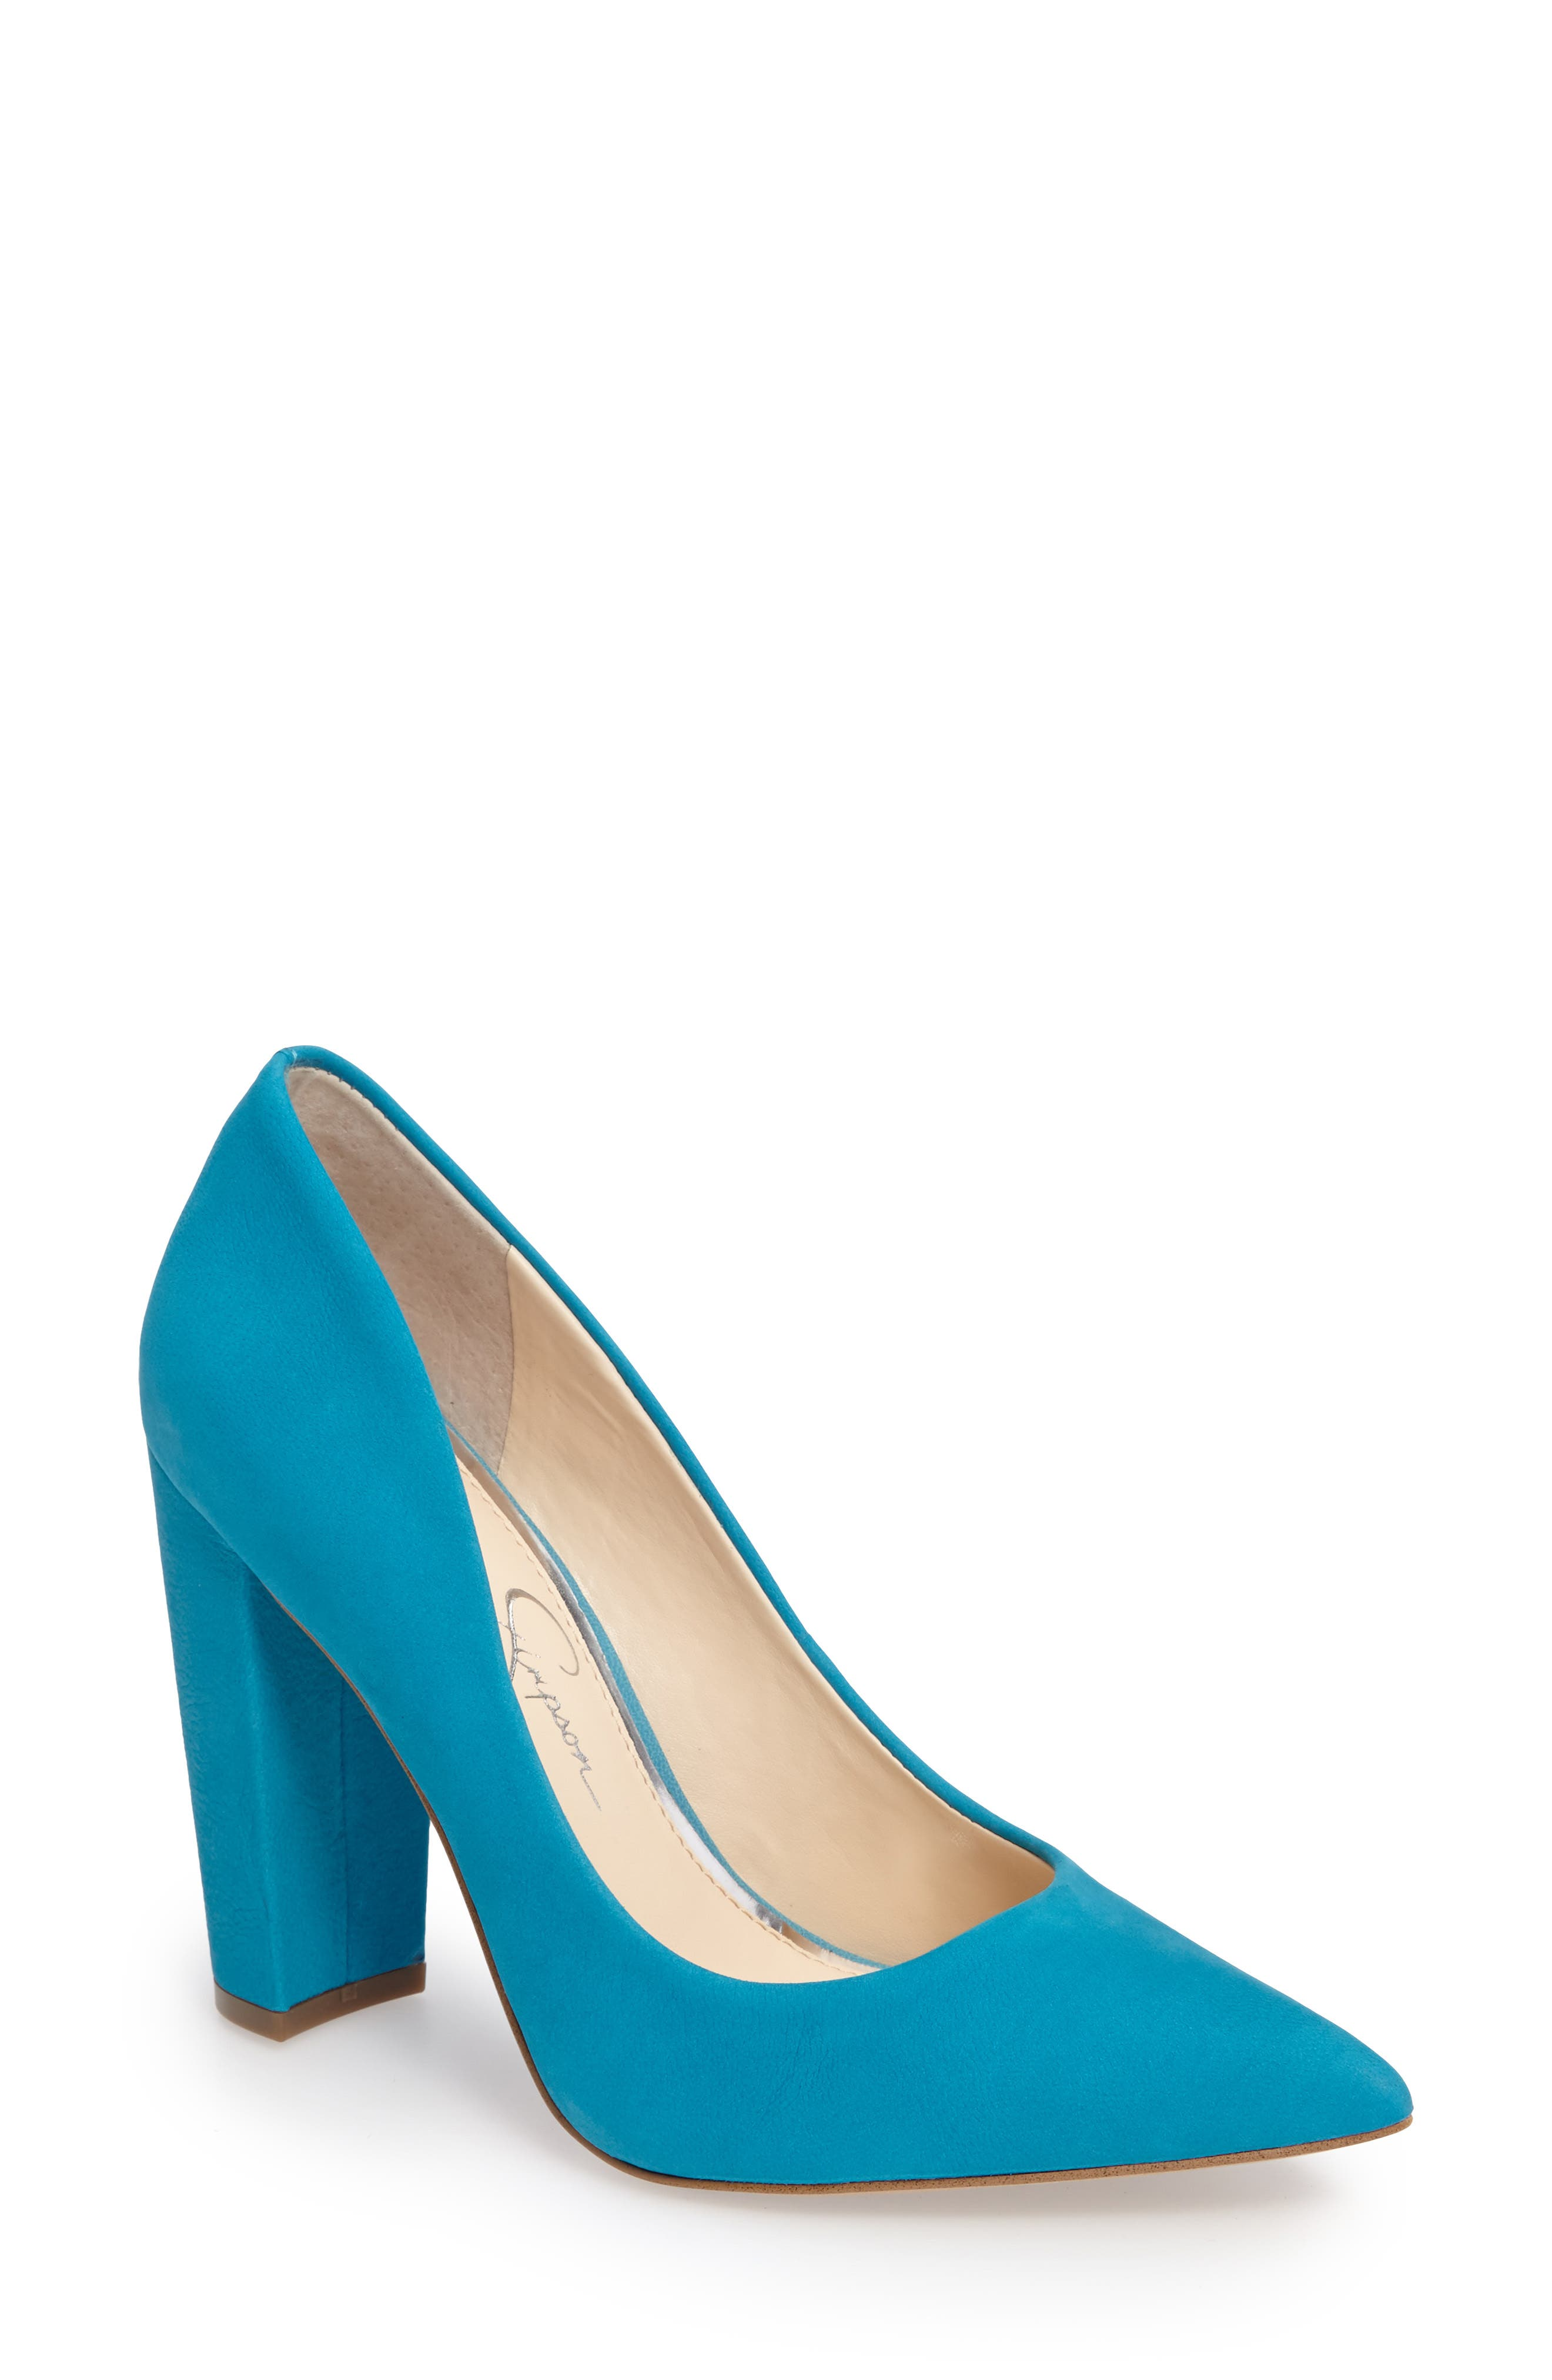 Alternate Image 1 Selected - Jessica Simpson Tanysha Pointy Toe Pump (Women)